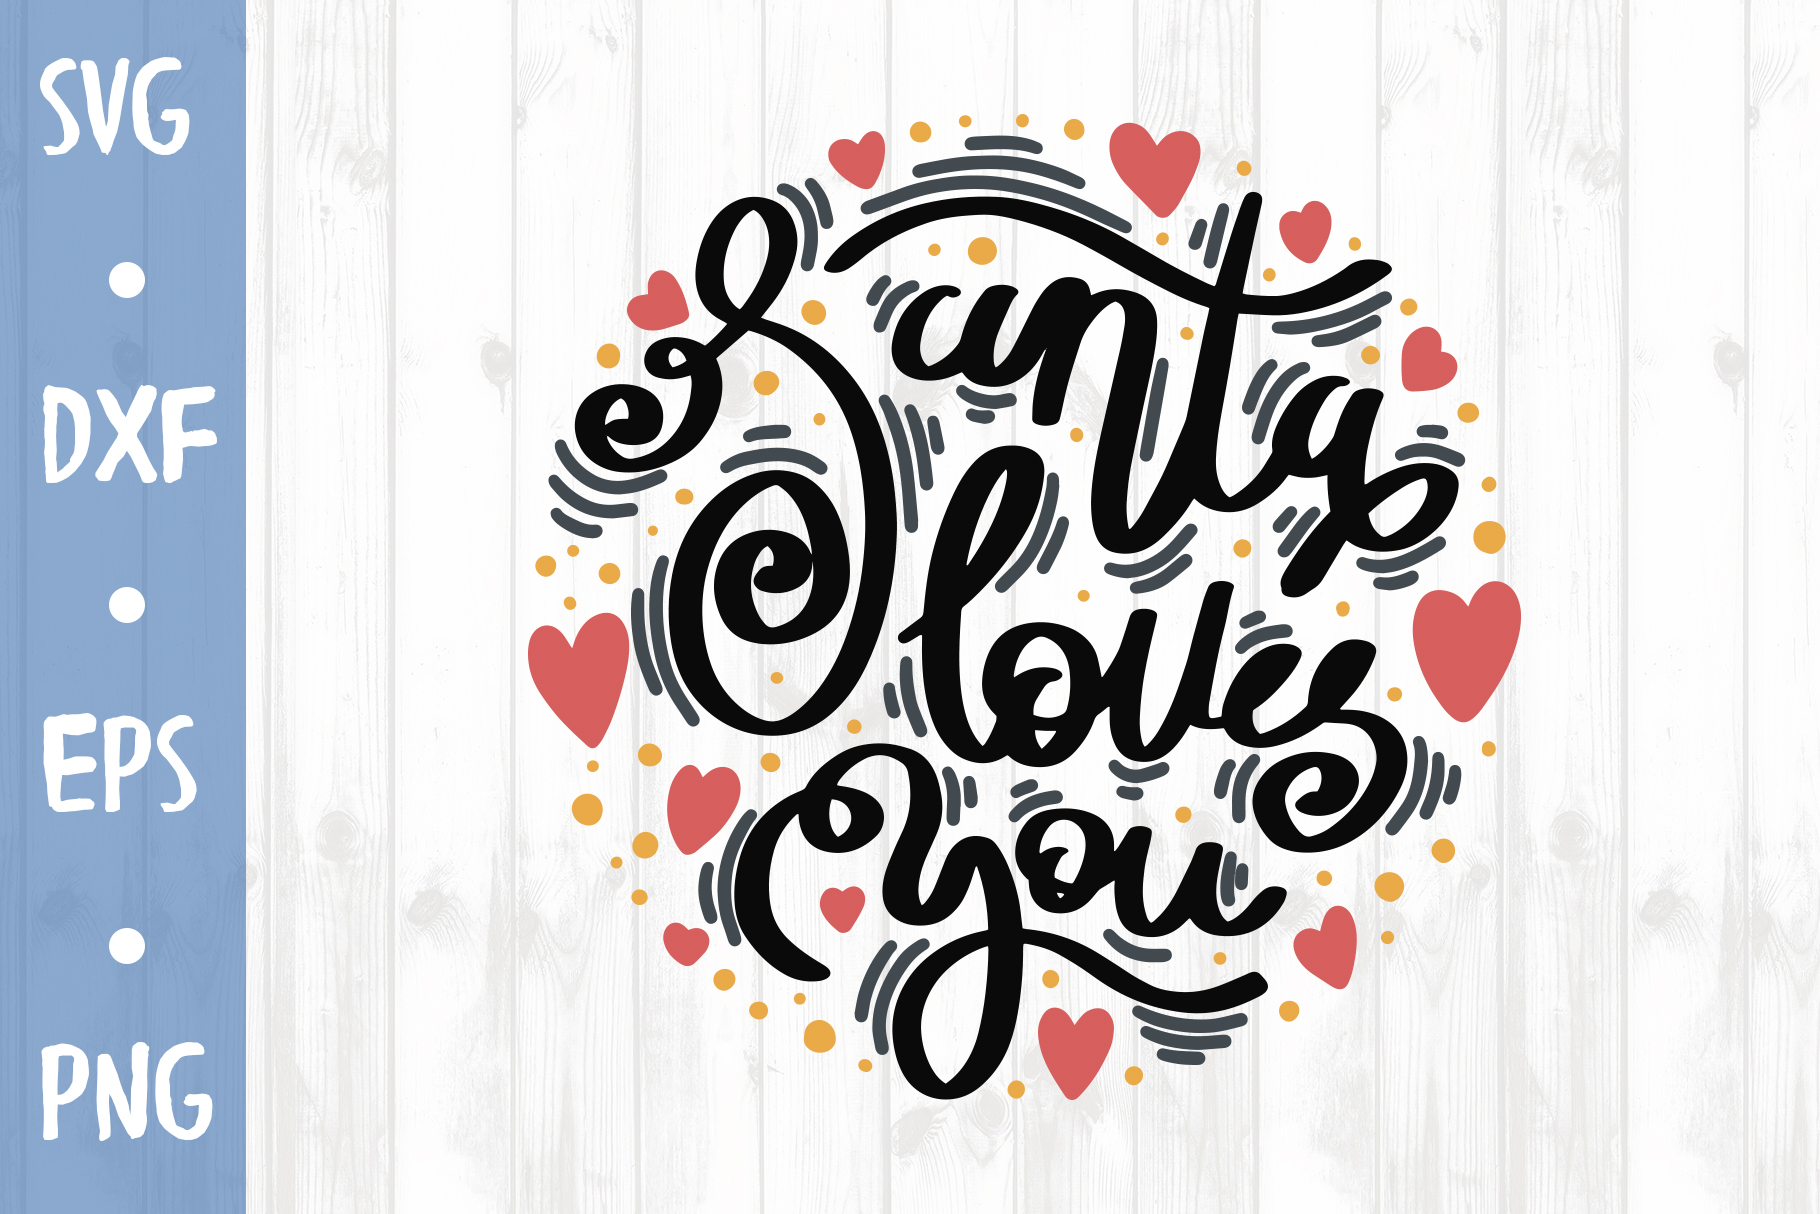 Santa loves you SVG CUT FILE example image 1